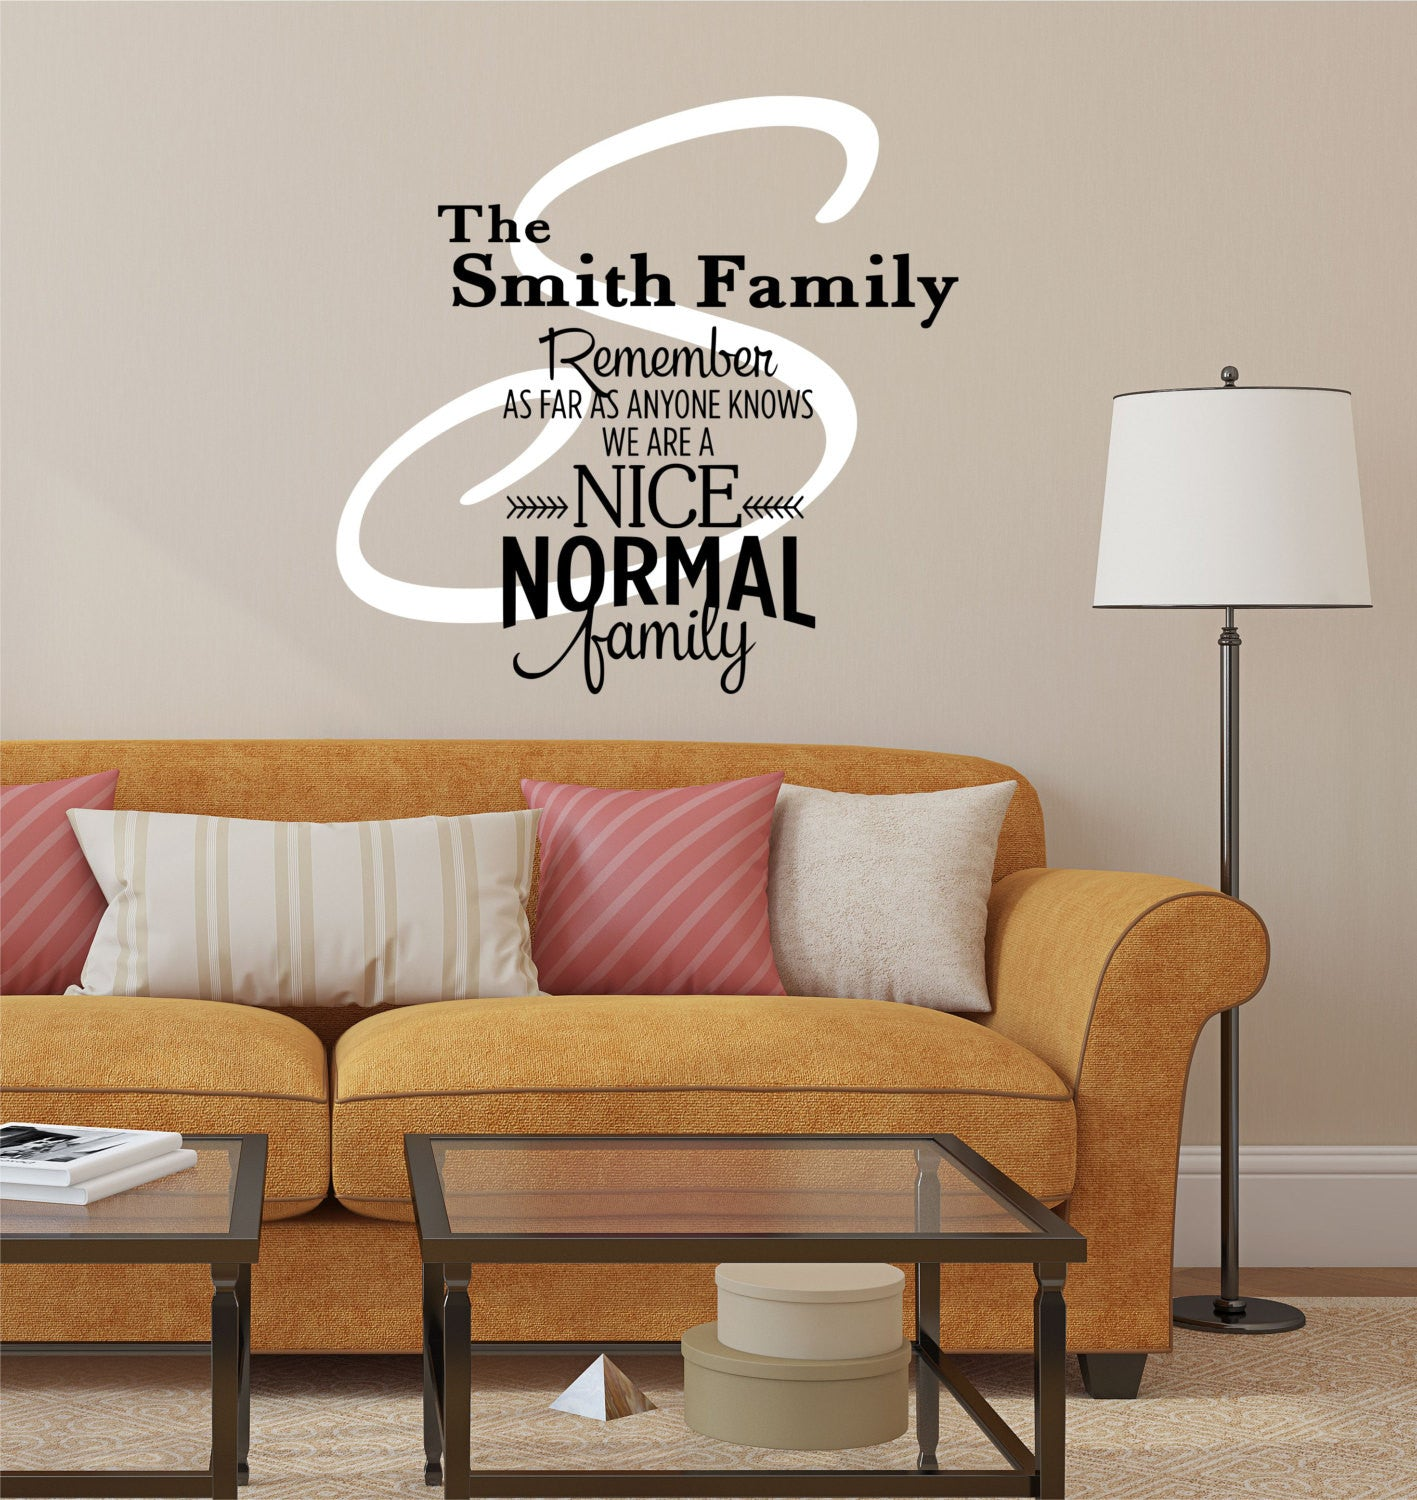 Family Name Decal - by Decor Designs Decals, Nice Normal Family -  Personalized Family Wall